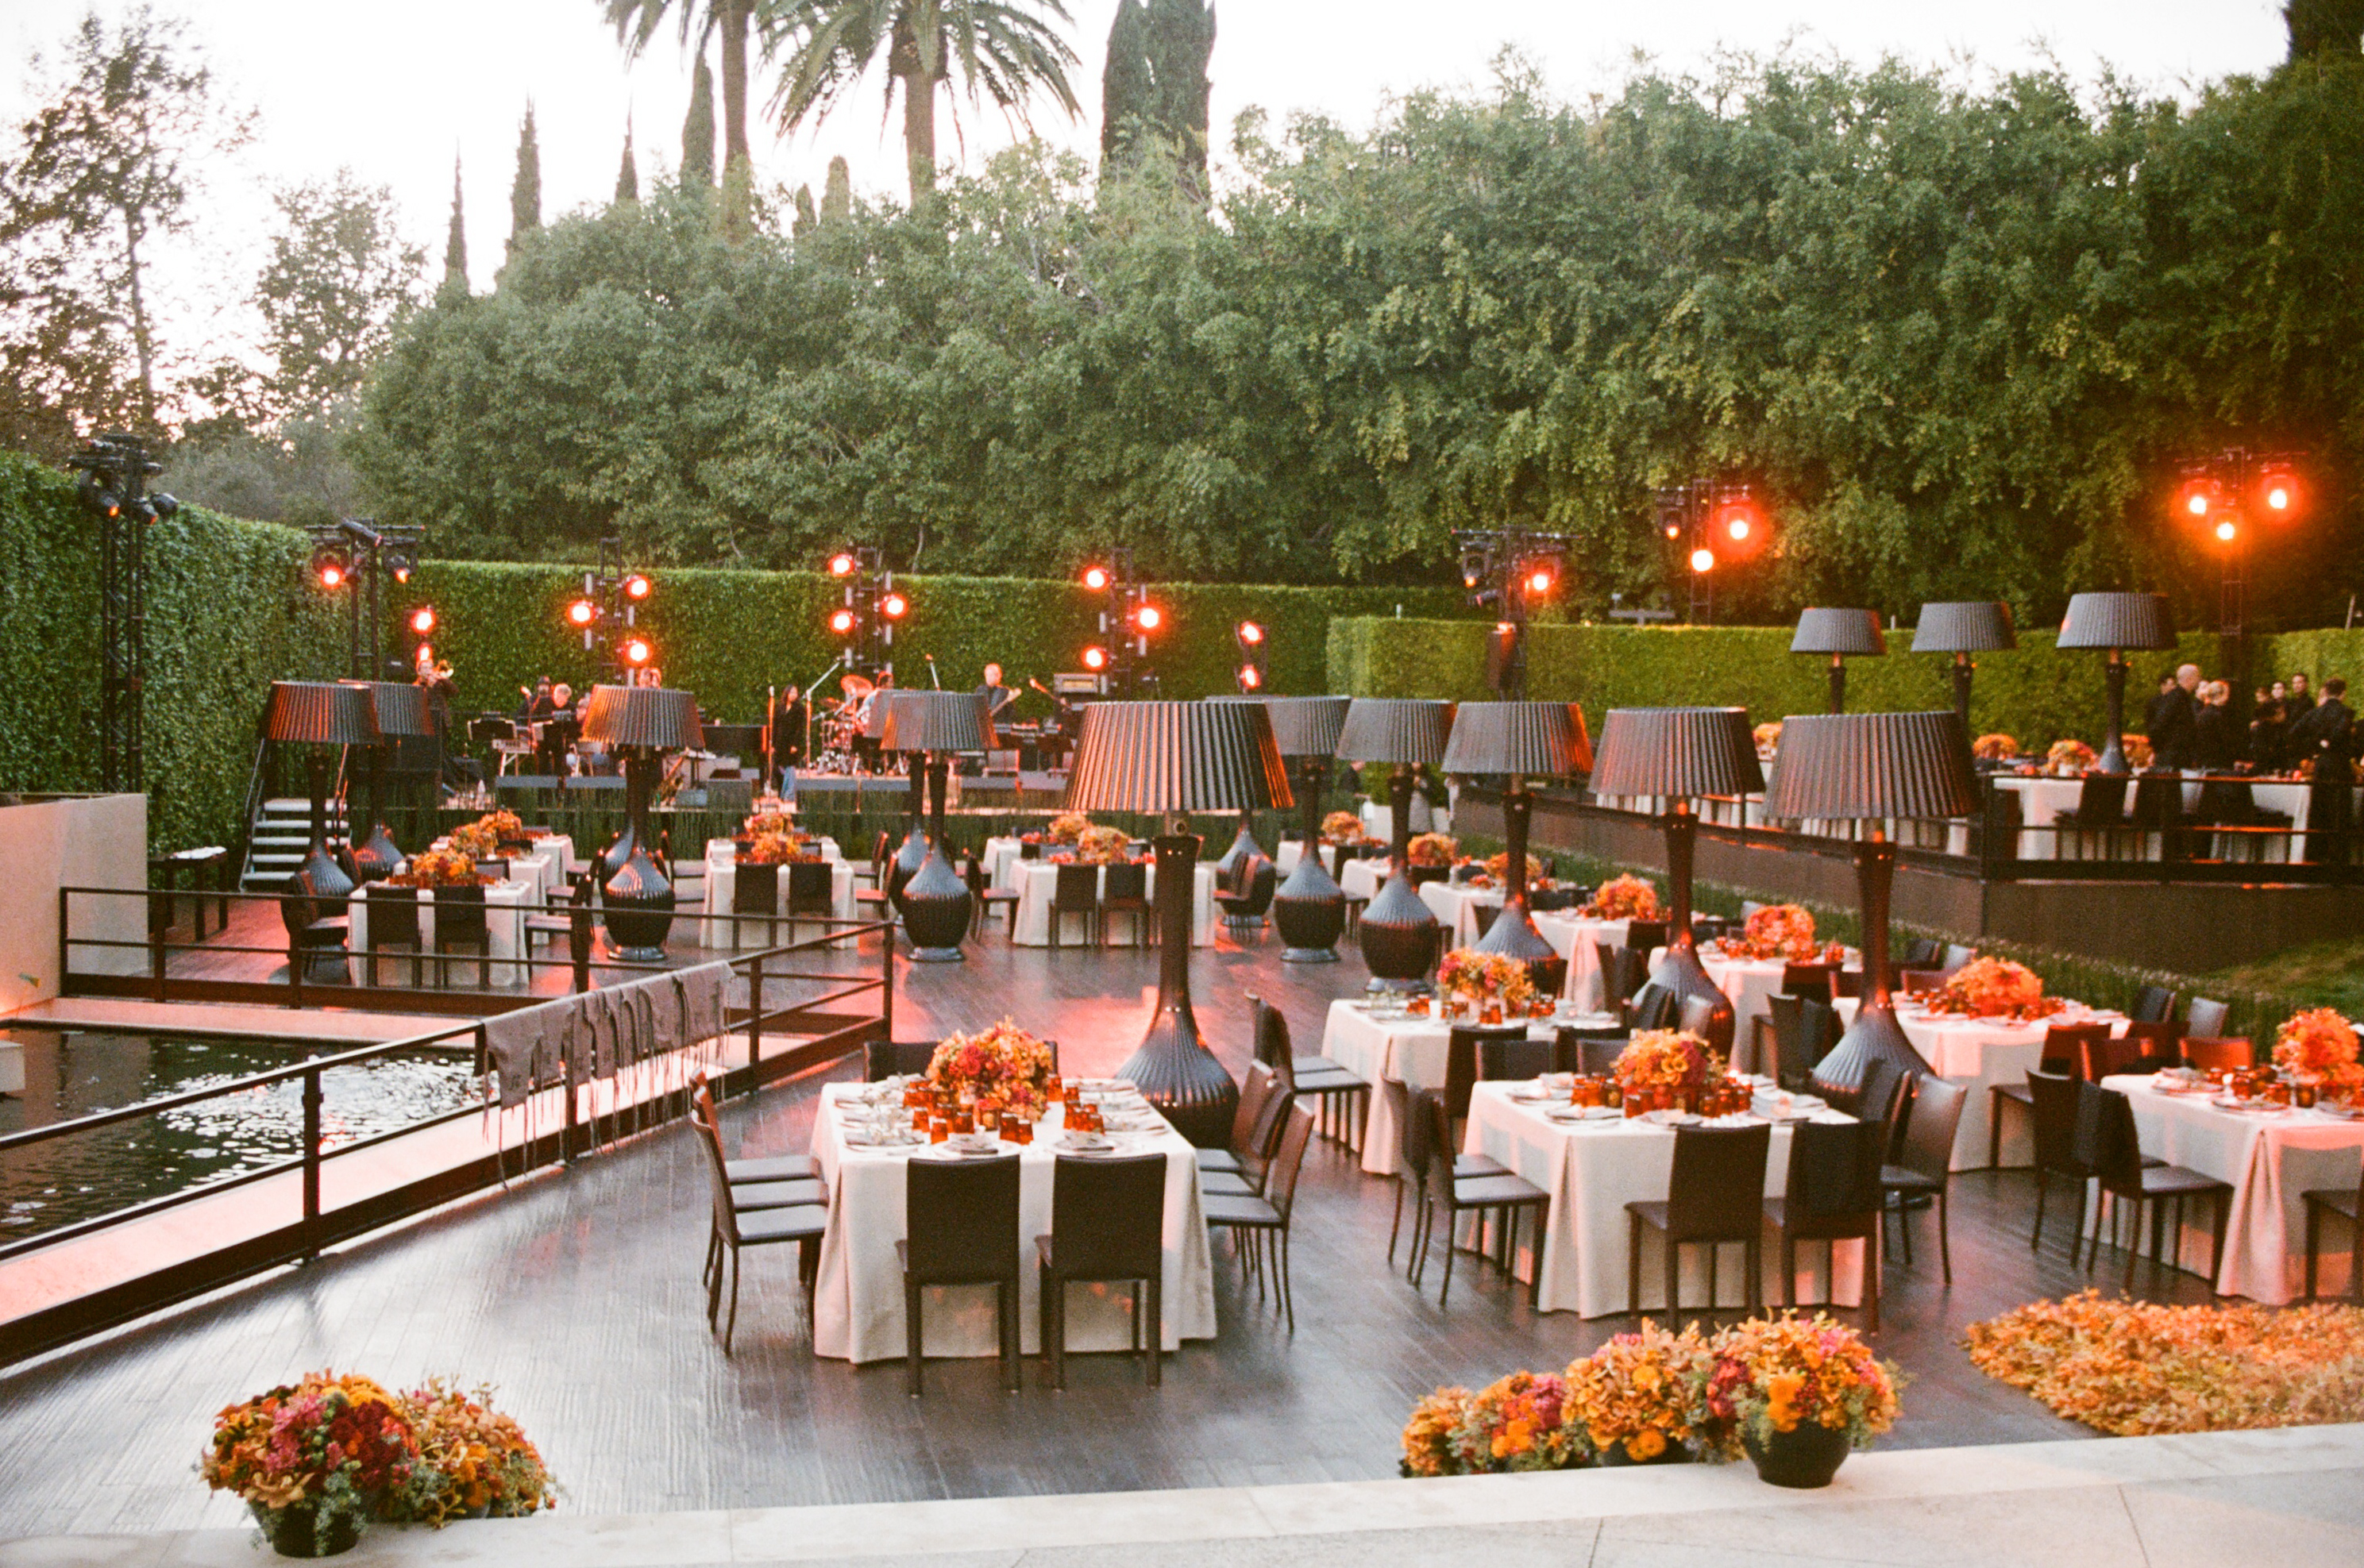 Outdoor Wedding Reception in LA - Paulette Wolf Events